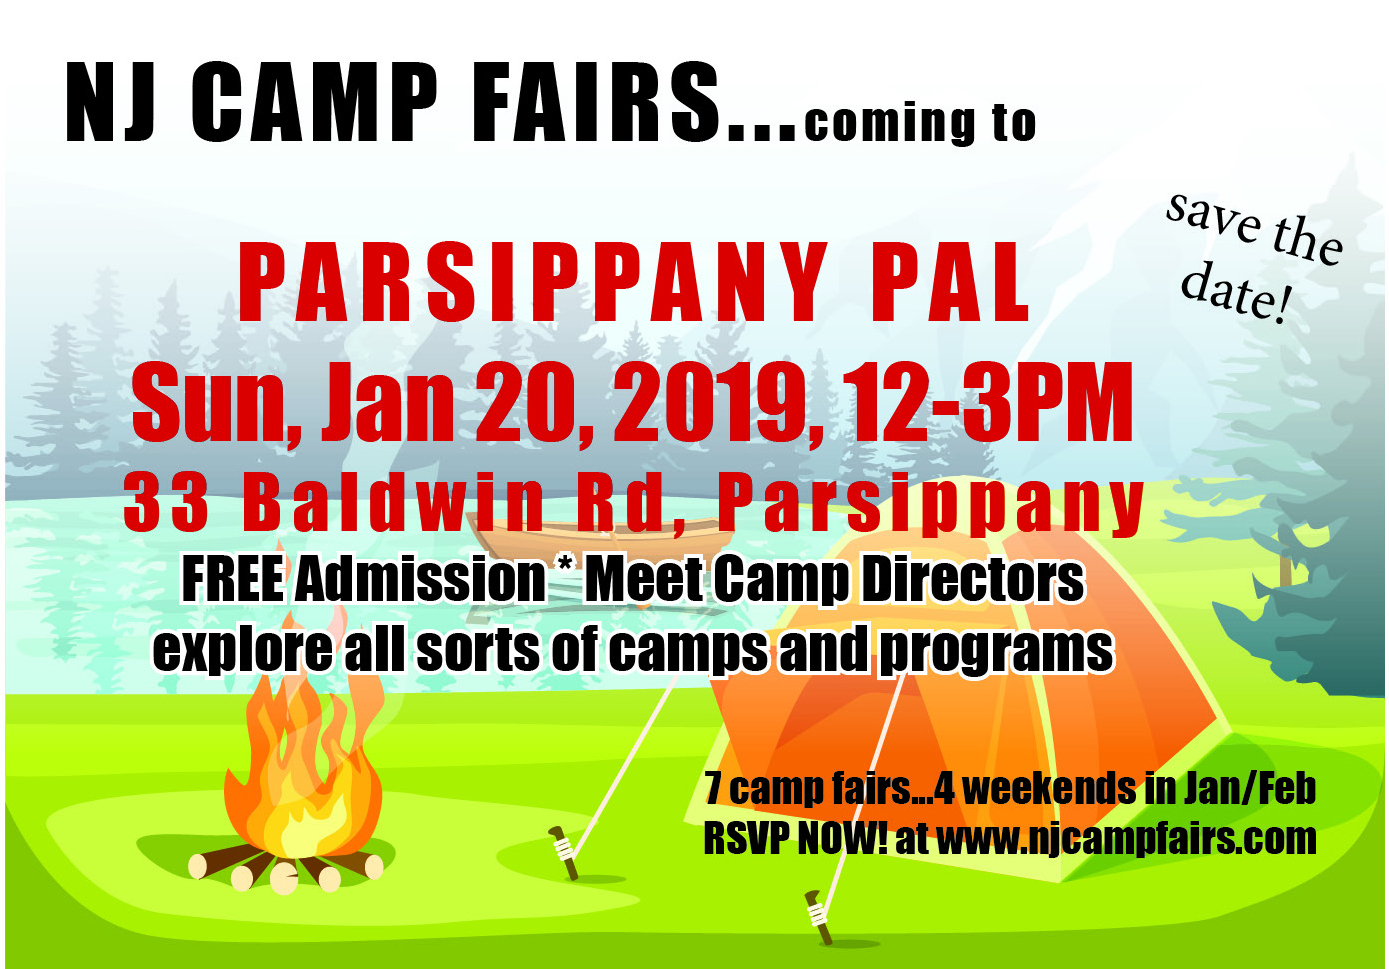 NJ CAMP FAIRS - MORRIS COUNTY Camp Fair held at Parsippany PAL